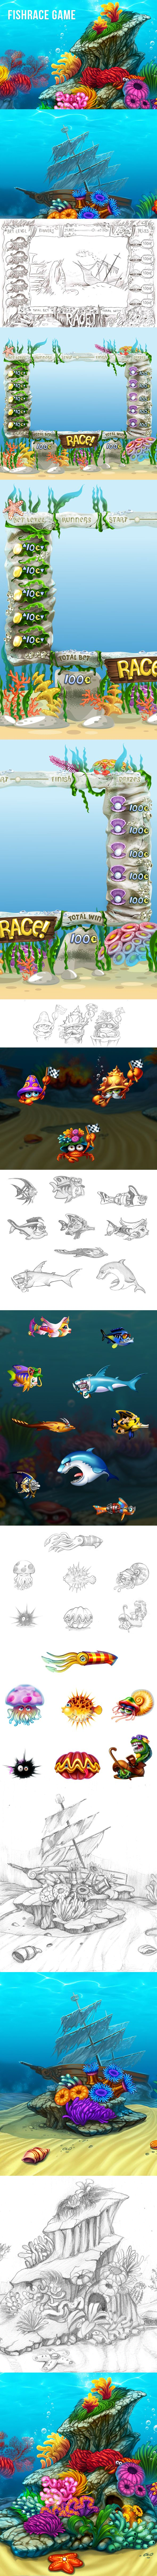 Fish race on Behance